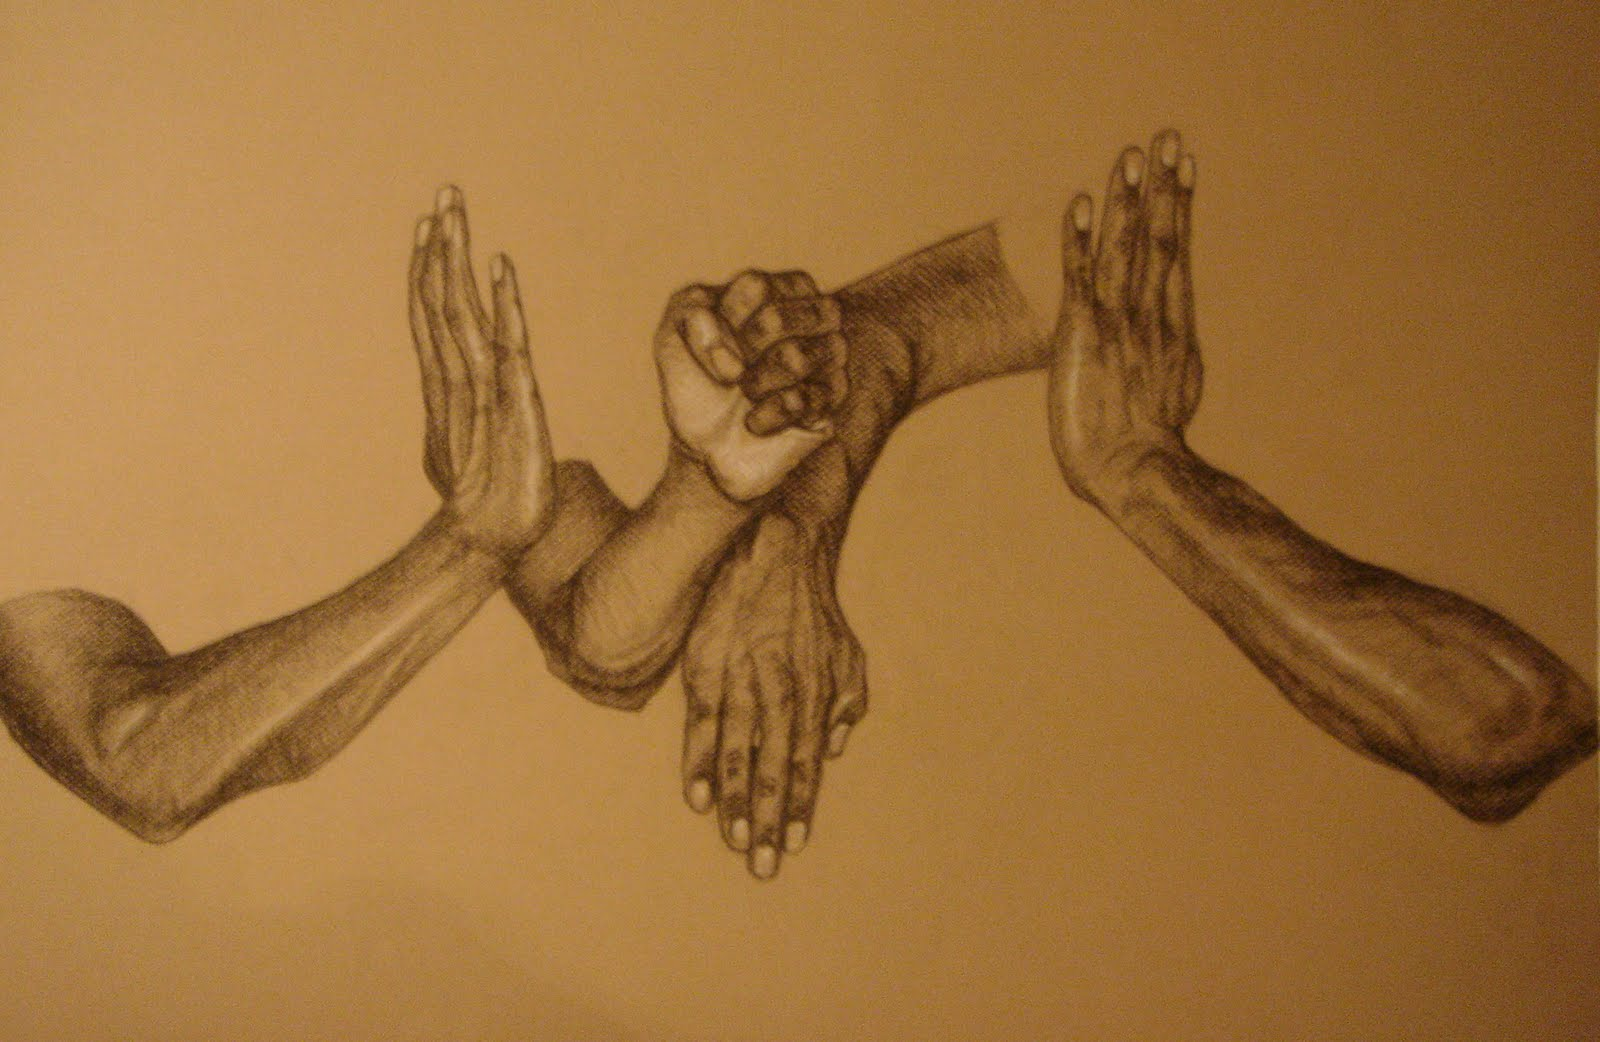 Illustrations & Sketches: Hands Charcoal Drawings